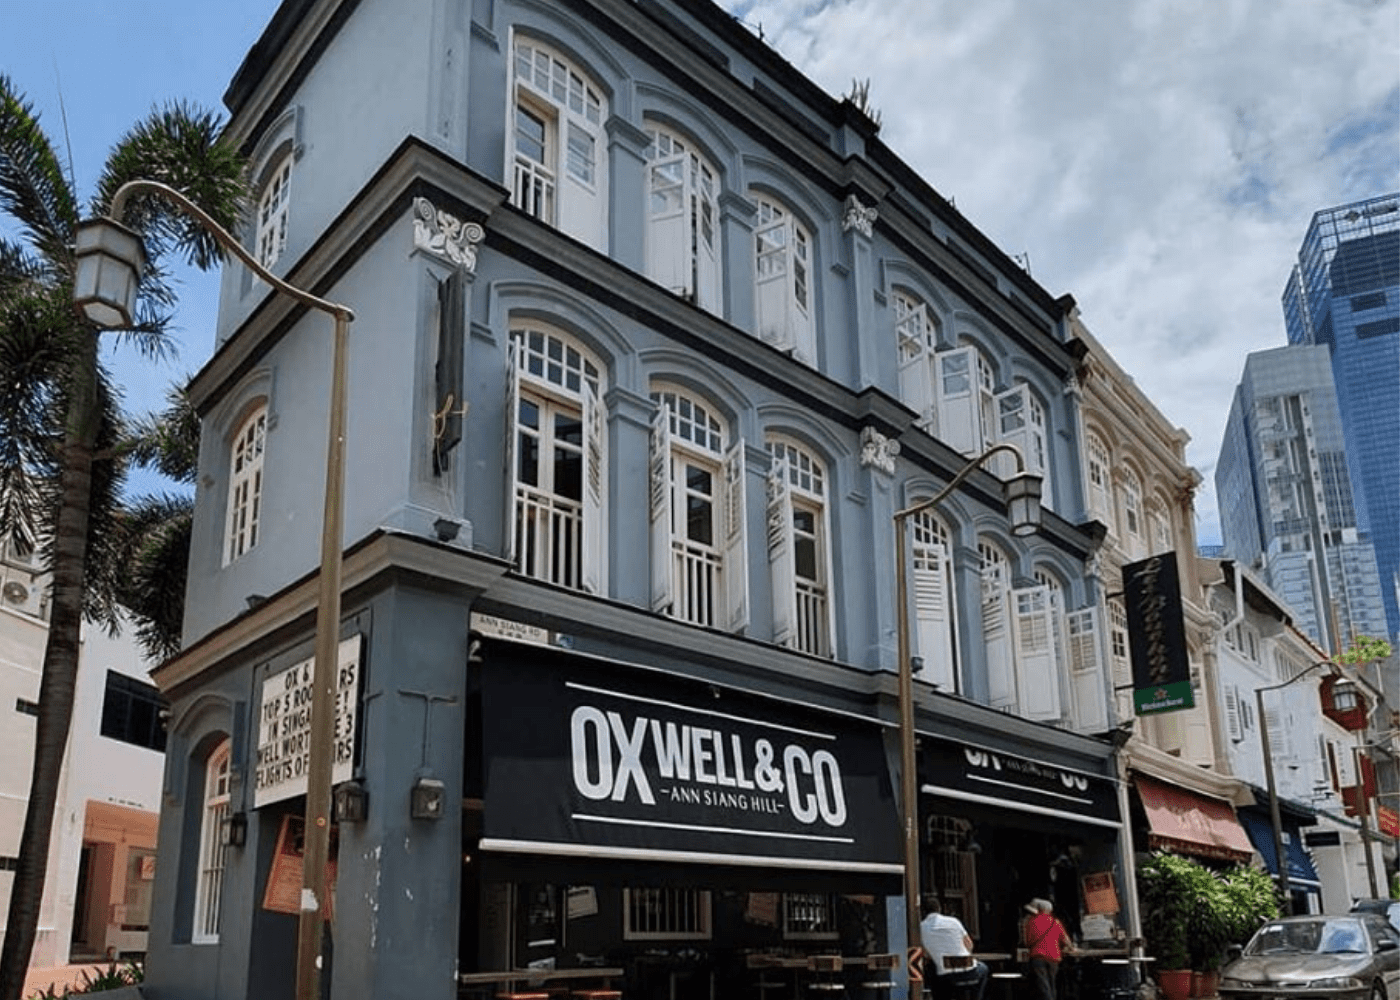 Things to do this weekend: Hit up Oxwell & Co for the last time